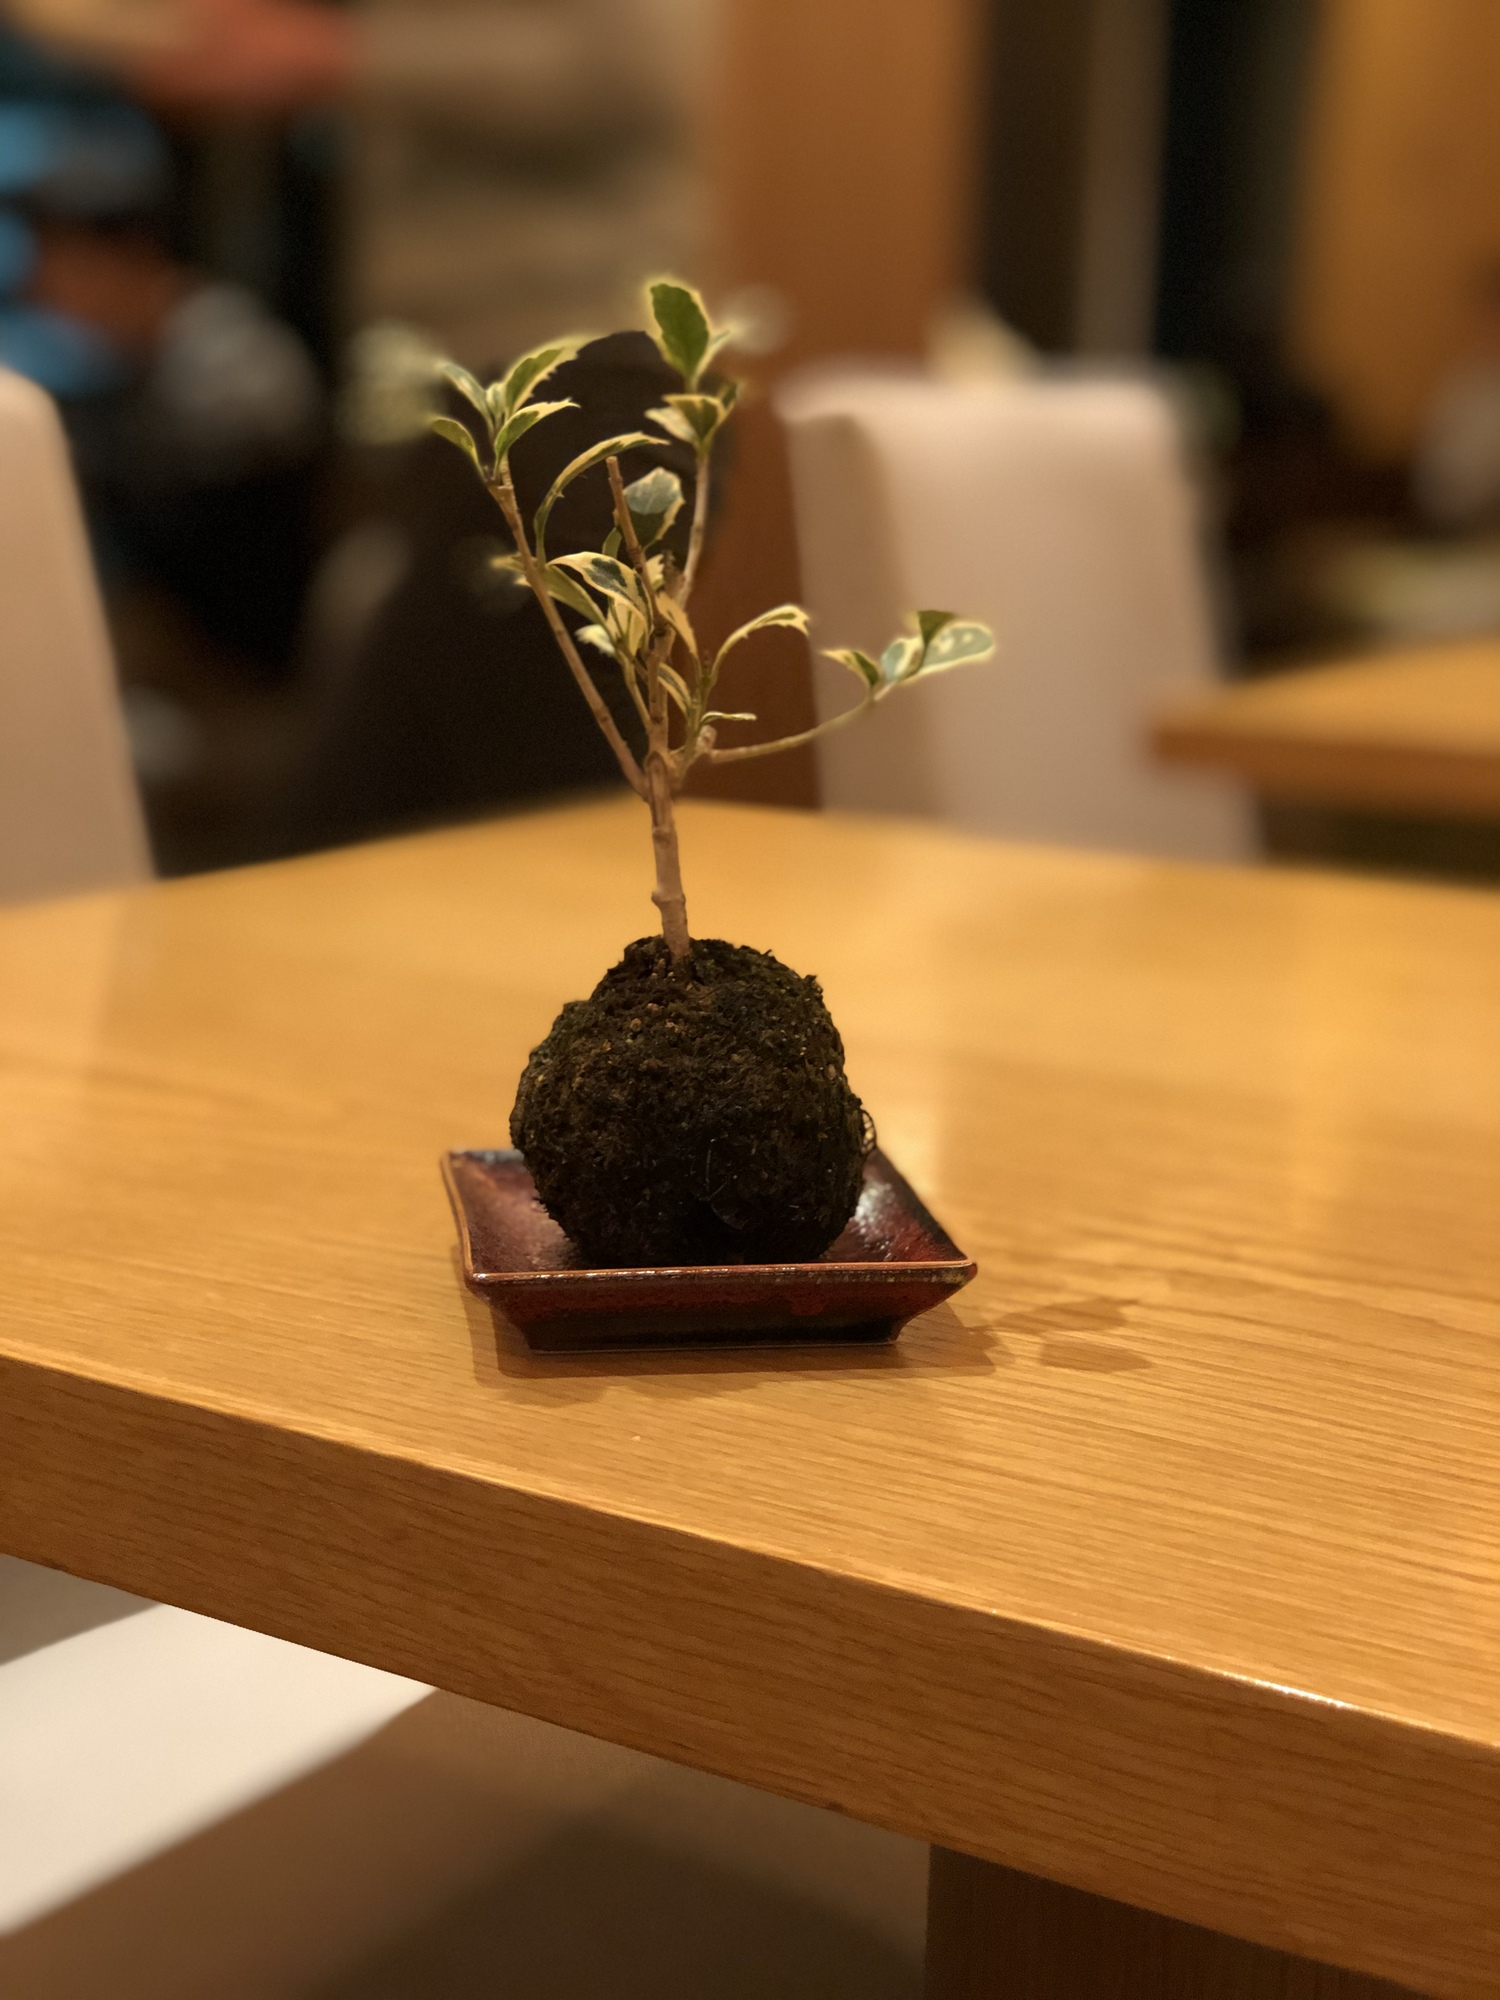 I loved these cute little trees in the exec lounge